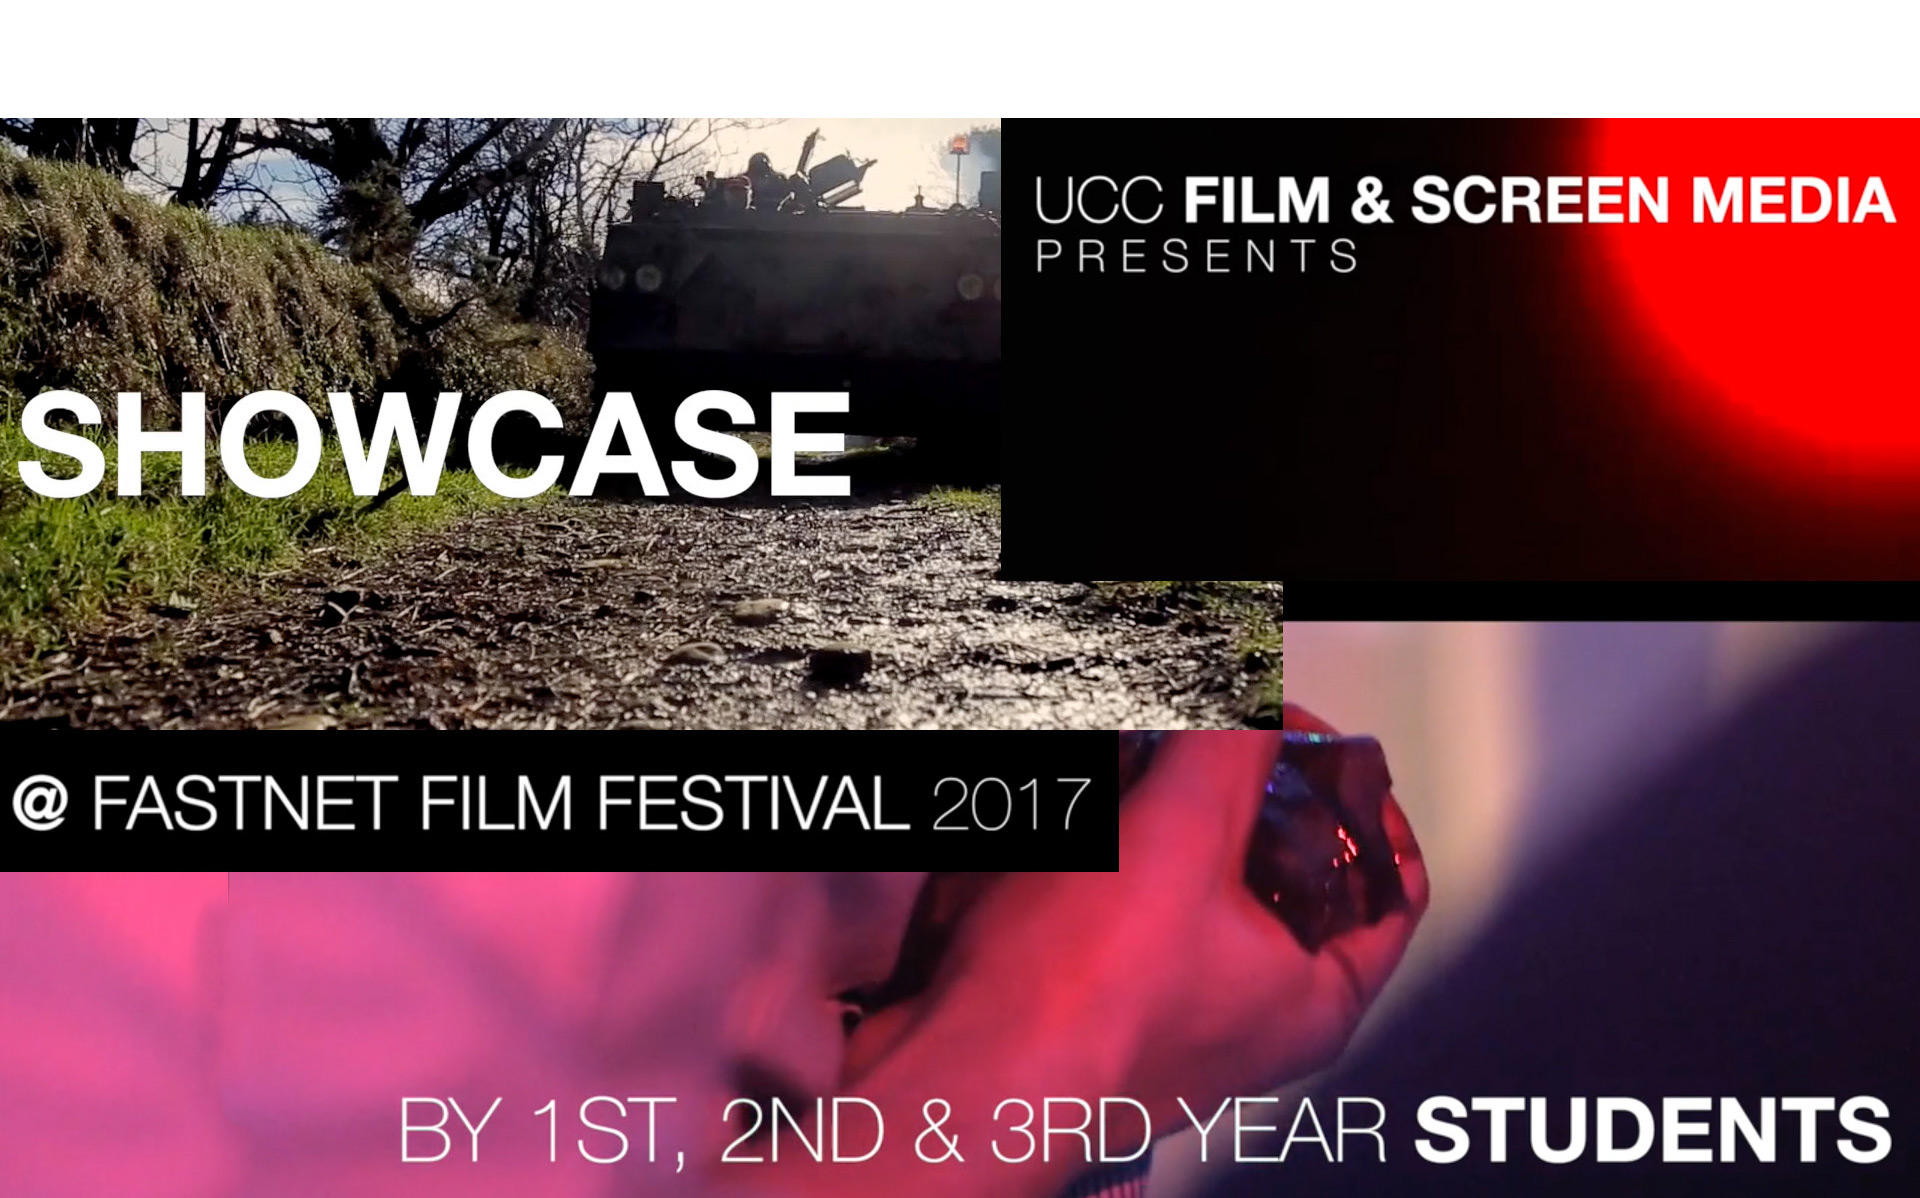 UCC Film and Screen Media Student's Showcase Event, Fastnet Film Festival, Saturday 27th May 12pm, Village Hall, Schull.